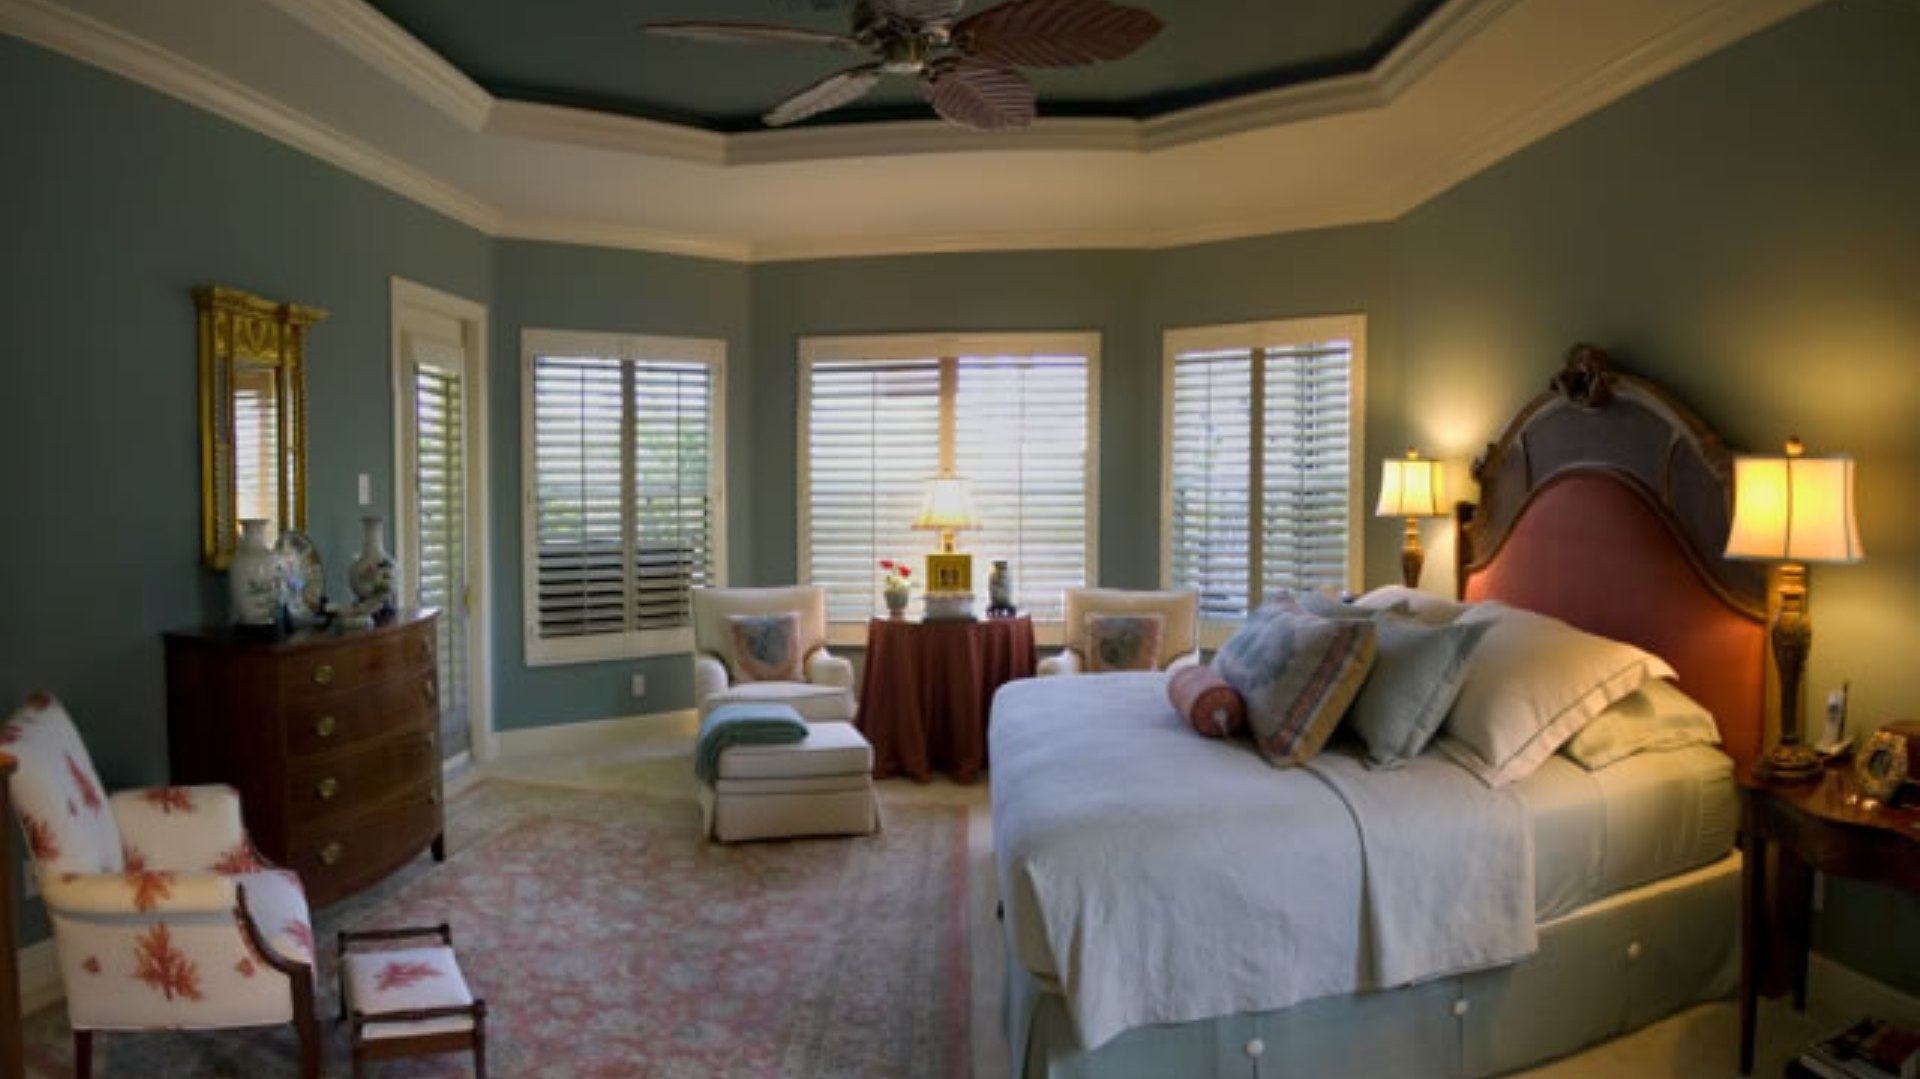 Interior Designers Vero Beach, FL; Home Decorators; Interior Designer ...